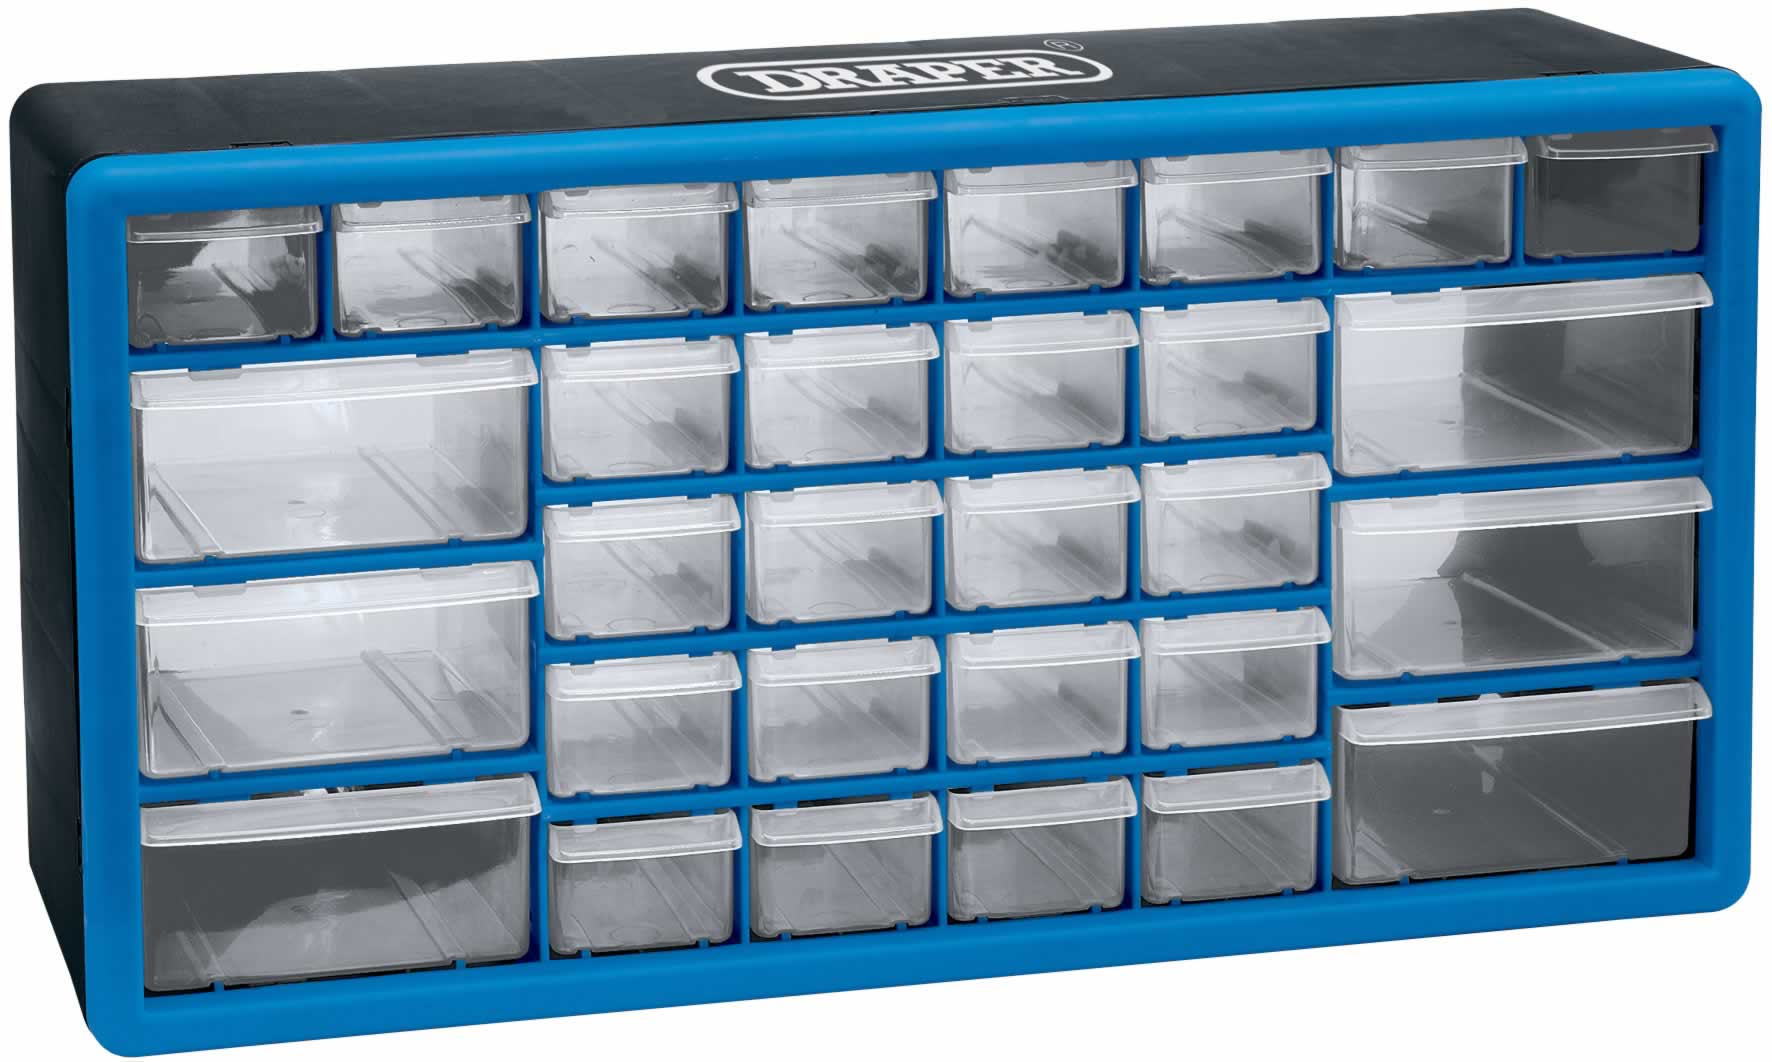 30 DRAWER STORAGE CABINET/ORGANISER - 500 x 160 x 255MM